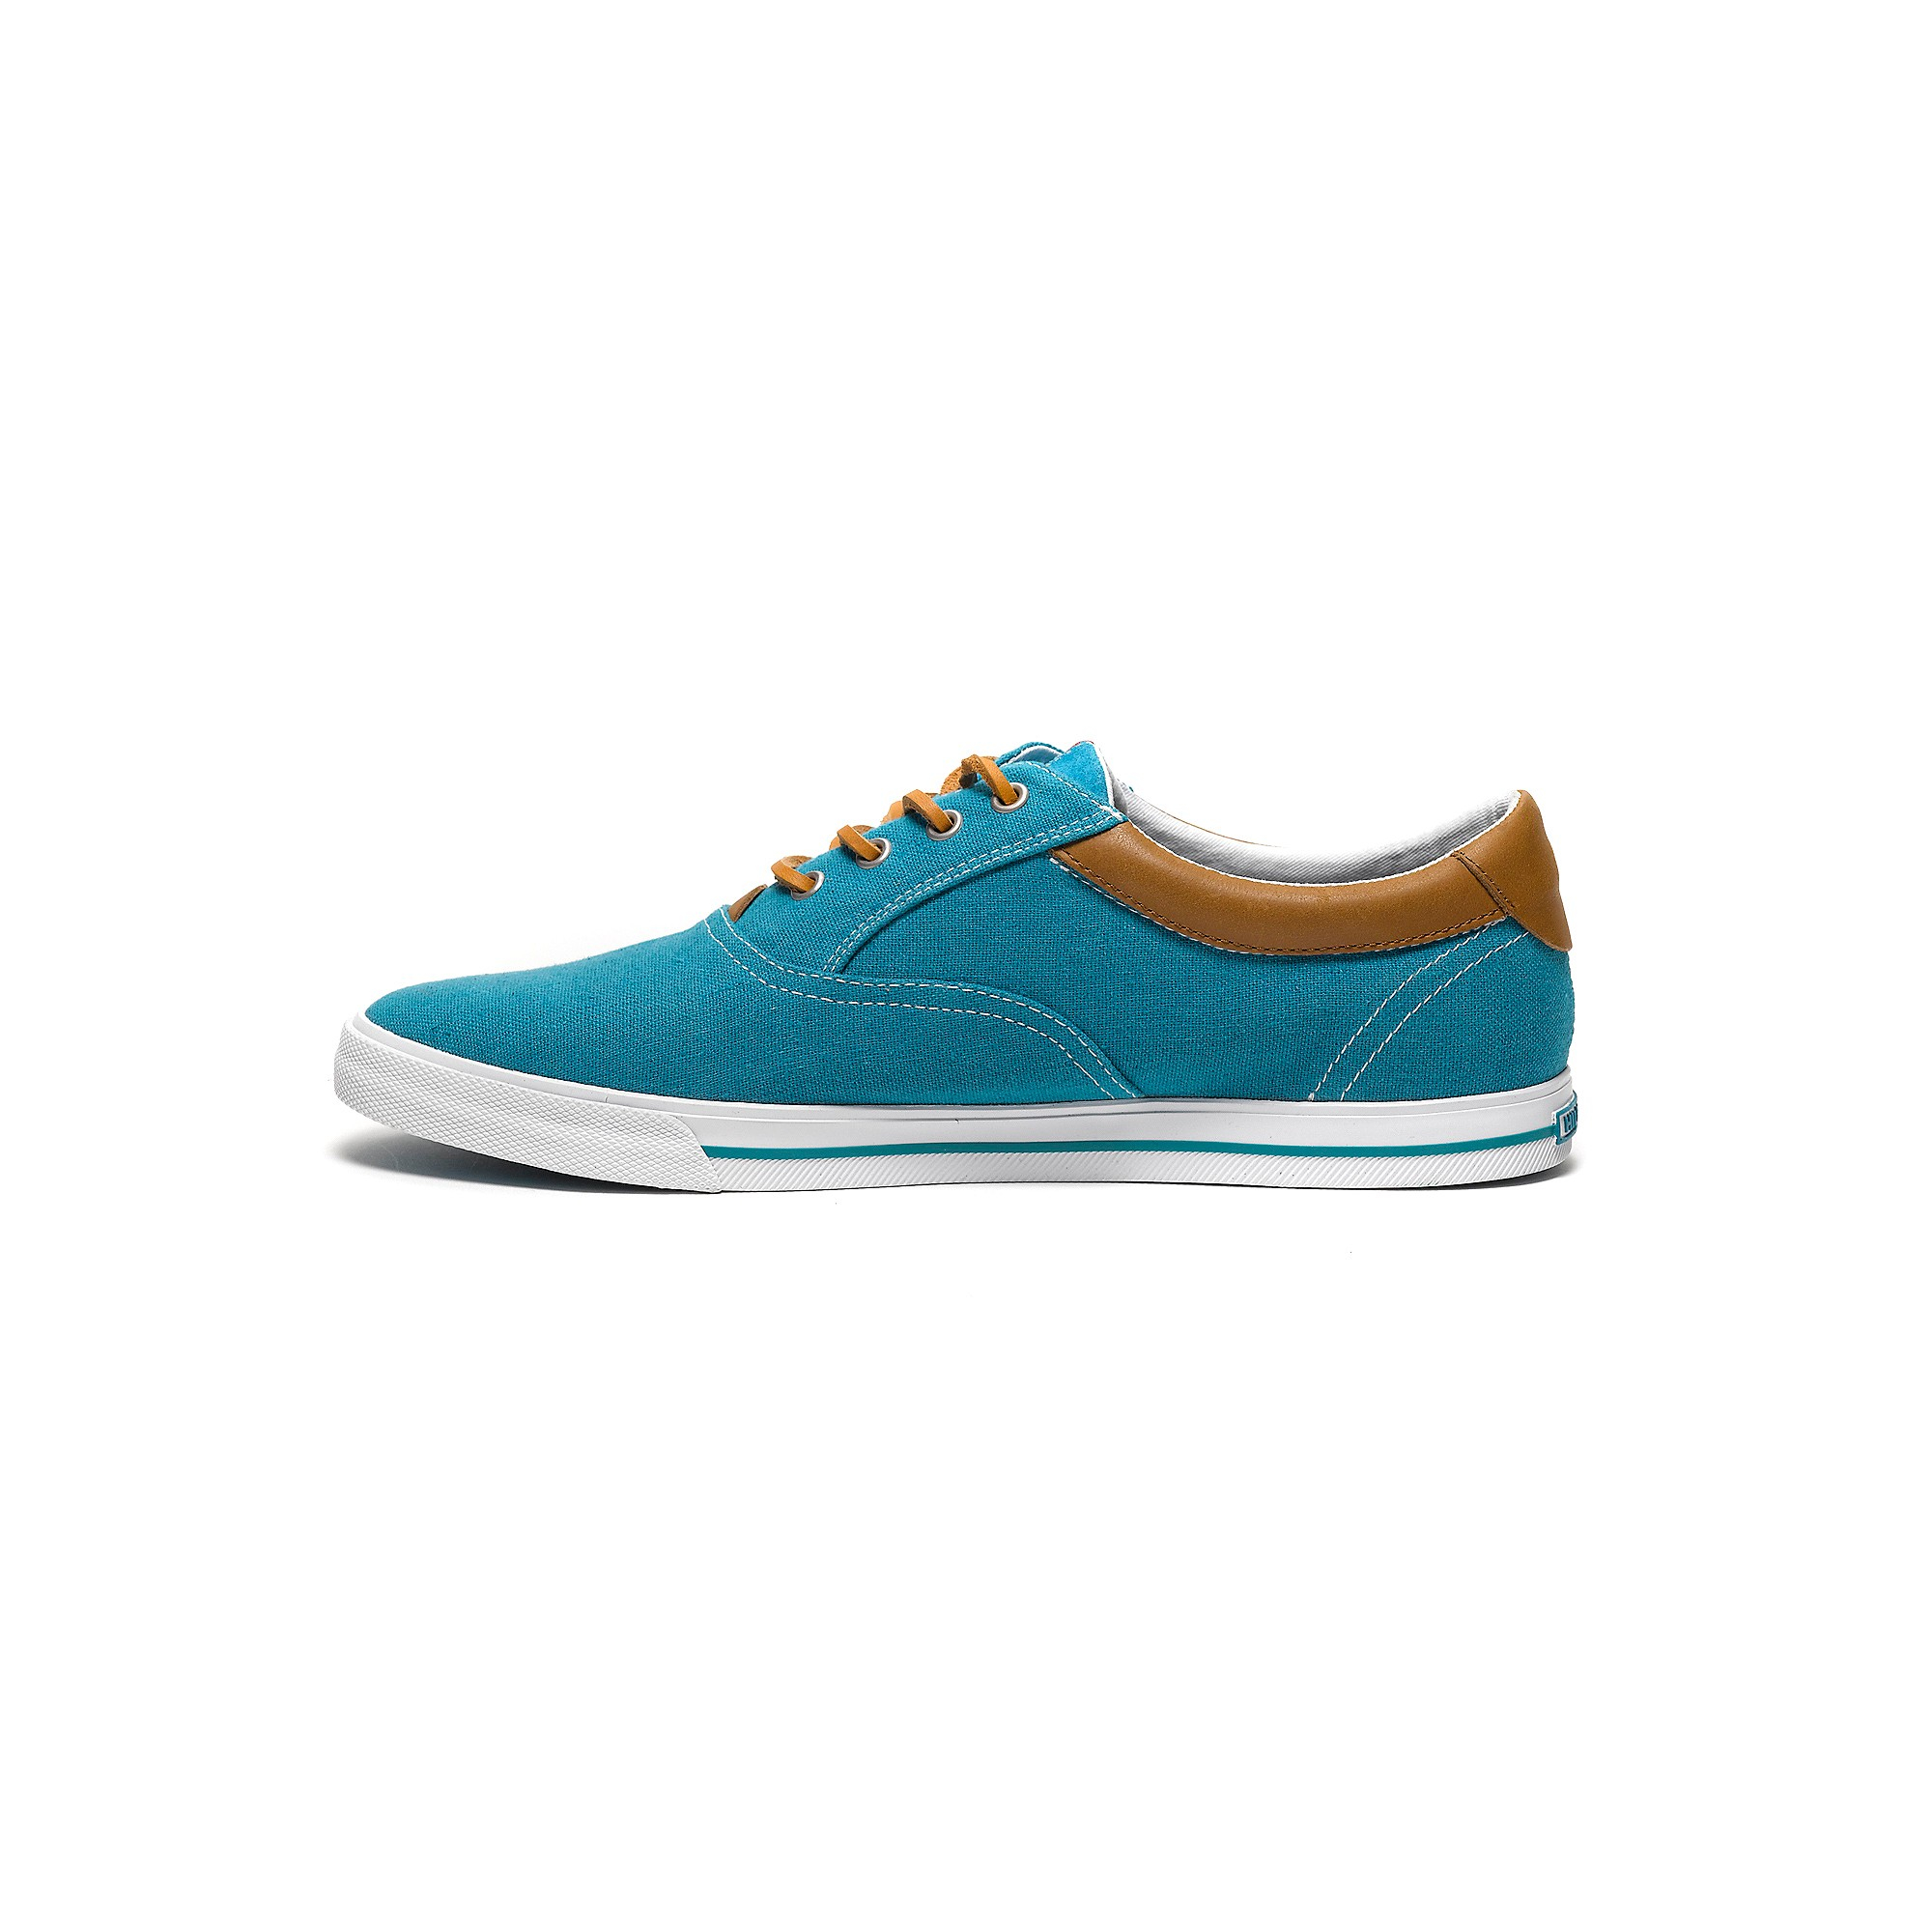 Lancer Canvas Shoes Online Shopping